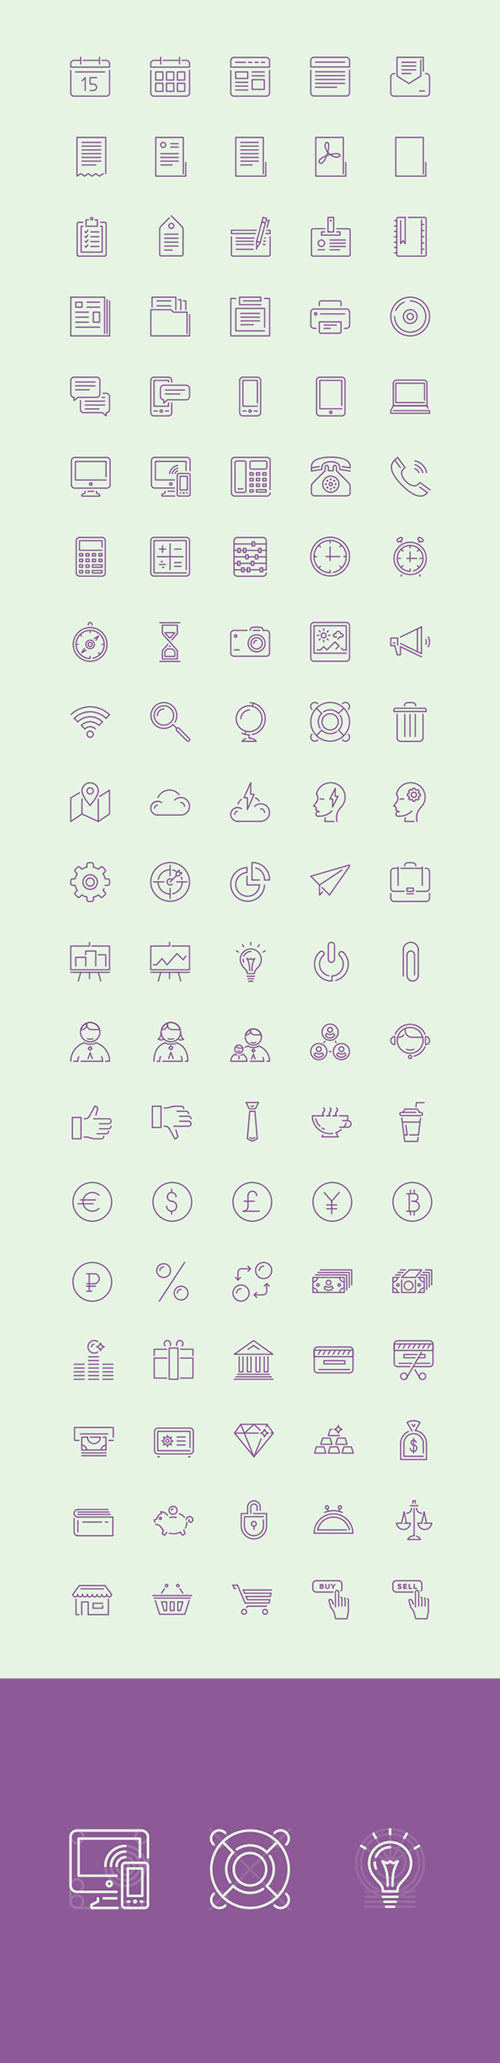 AI, EPS, PDF Vector Web Icons - Puppets - 100 Stroke Icons 2015